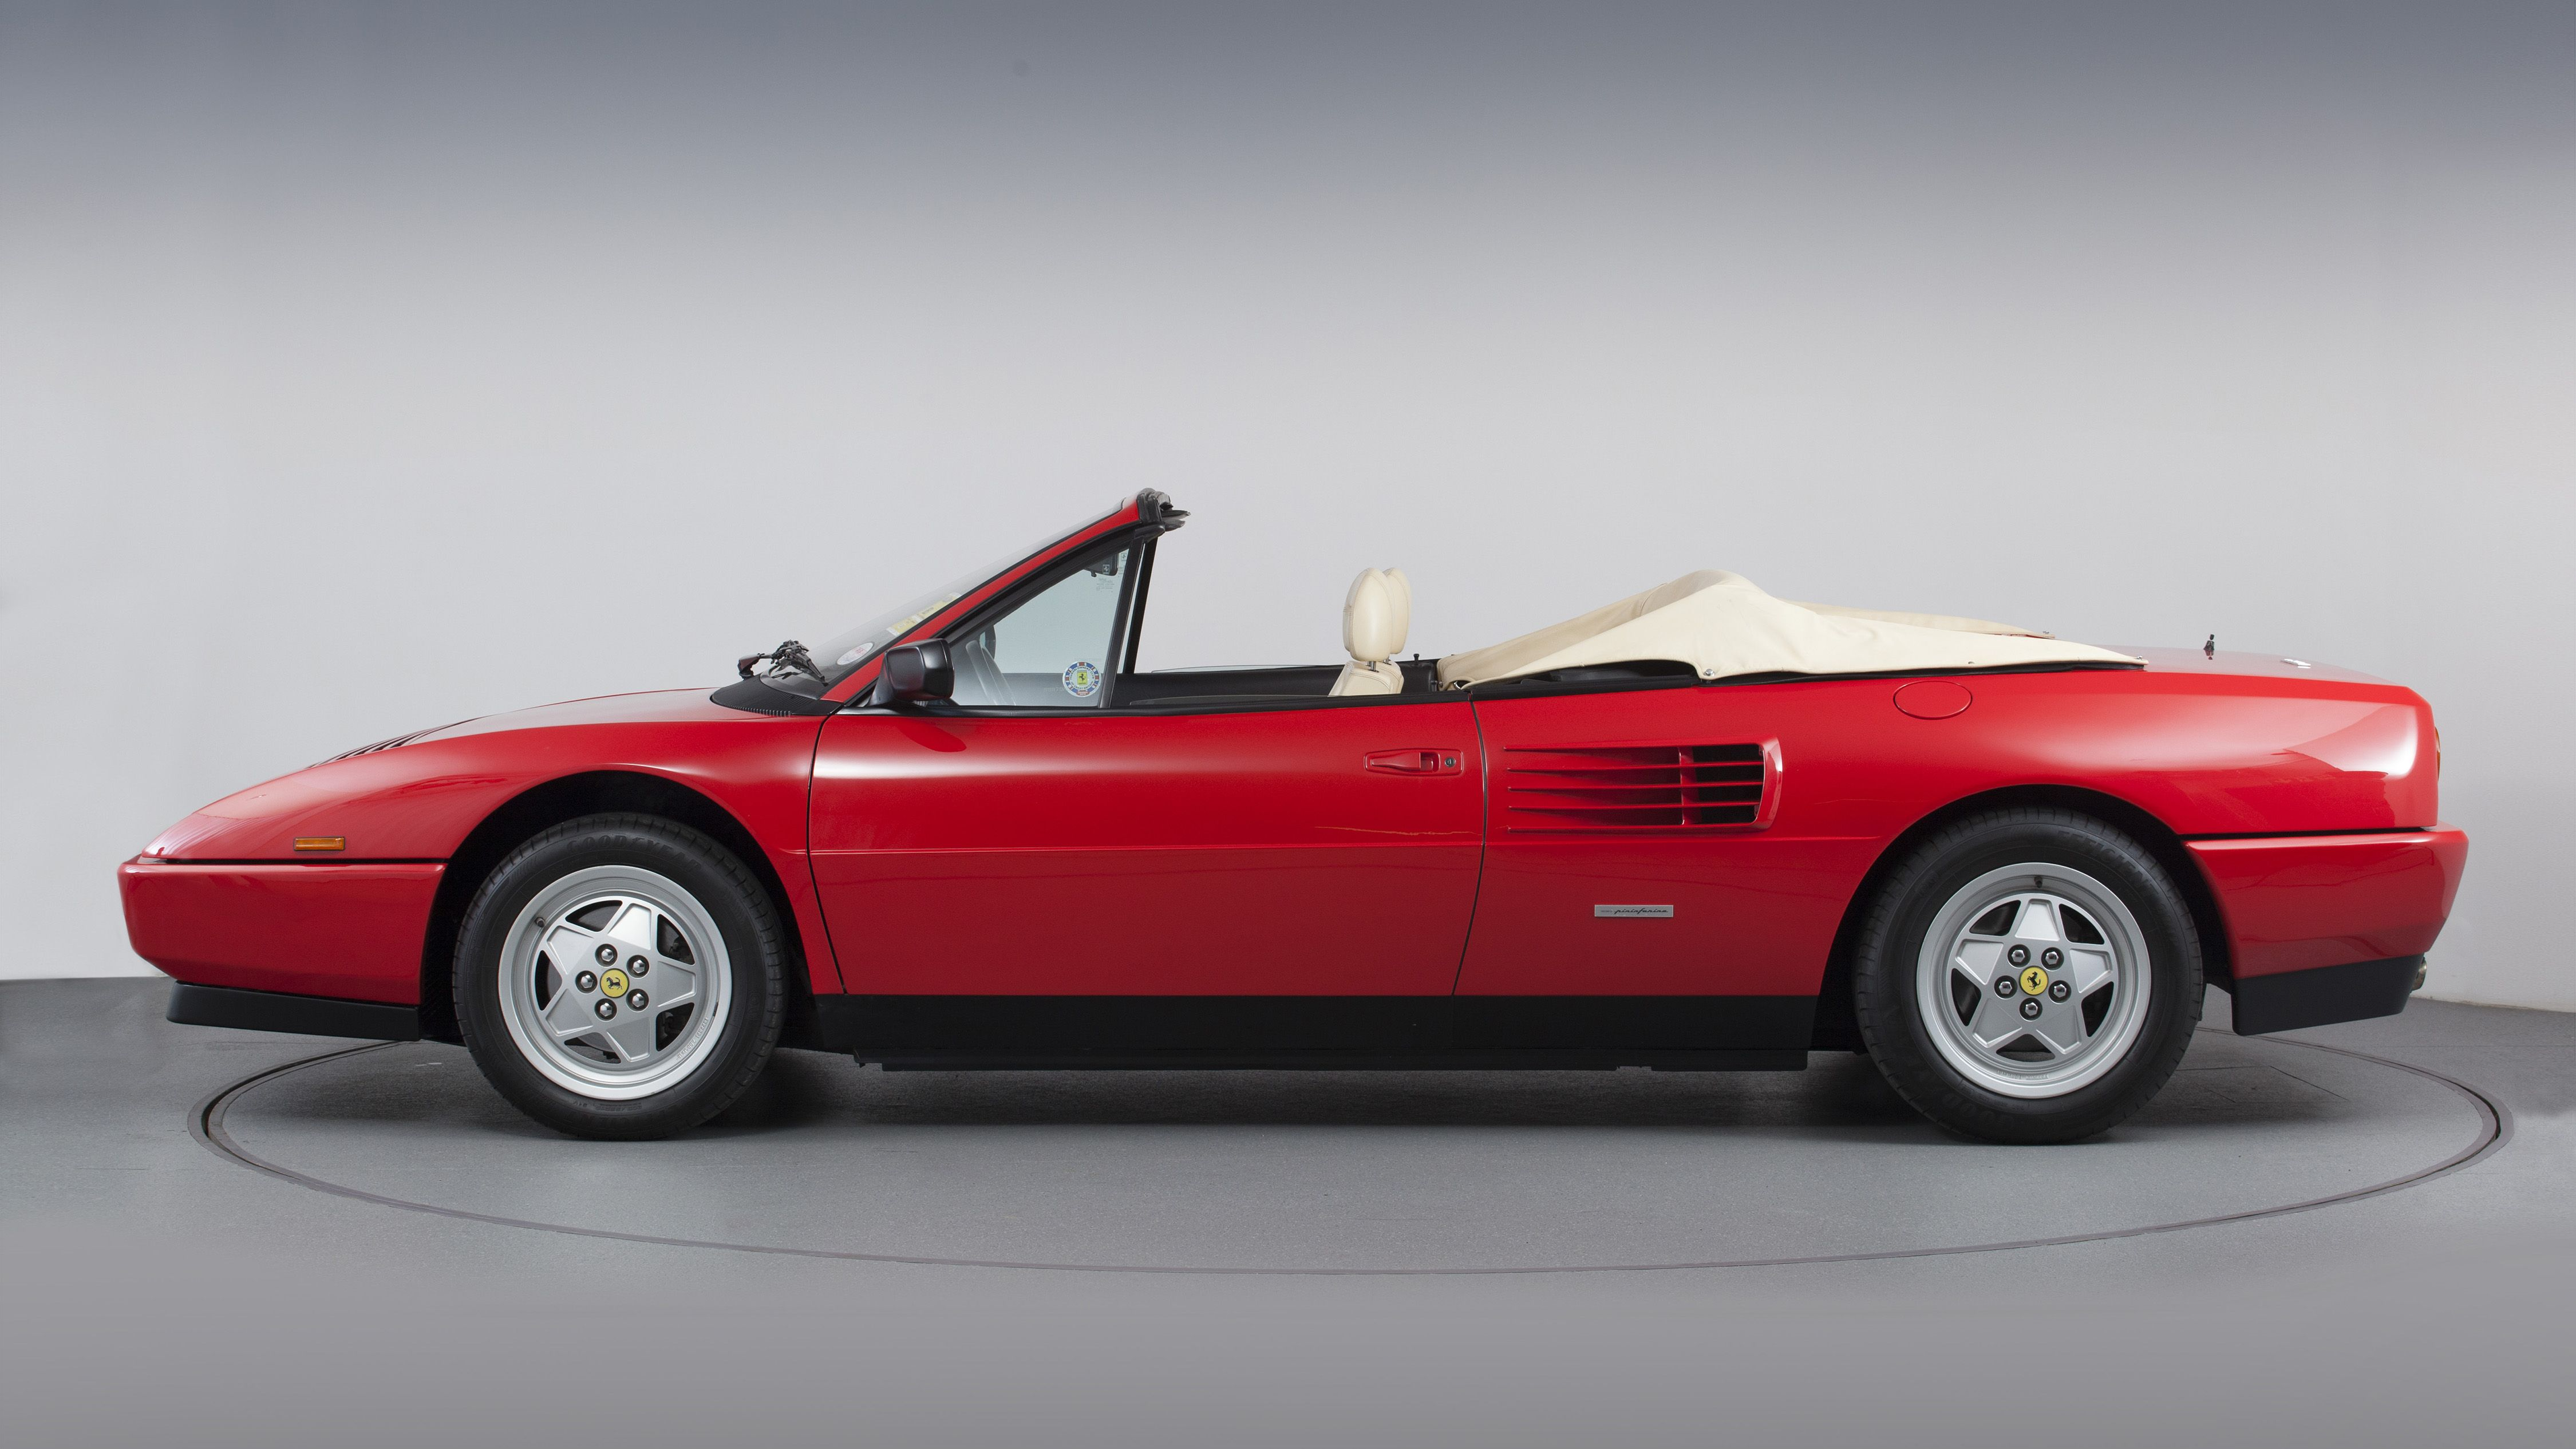 8dc6d86ad2a48f0b2e687d9b65a0c53d Elegant Ferrari F 108 Al-mondial 8 Cars Trend